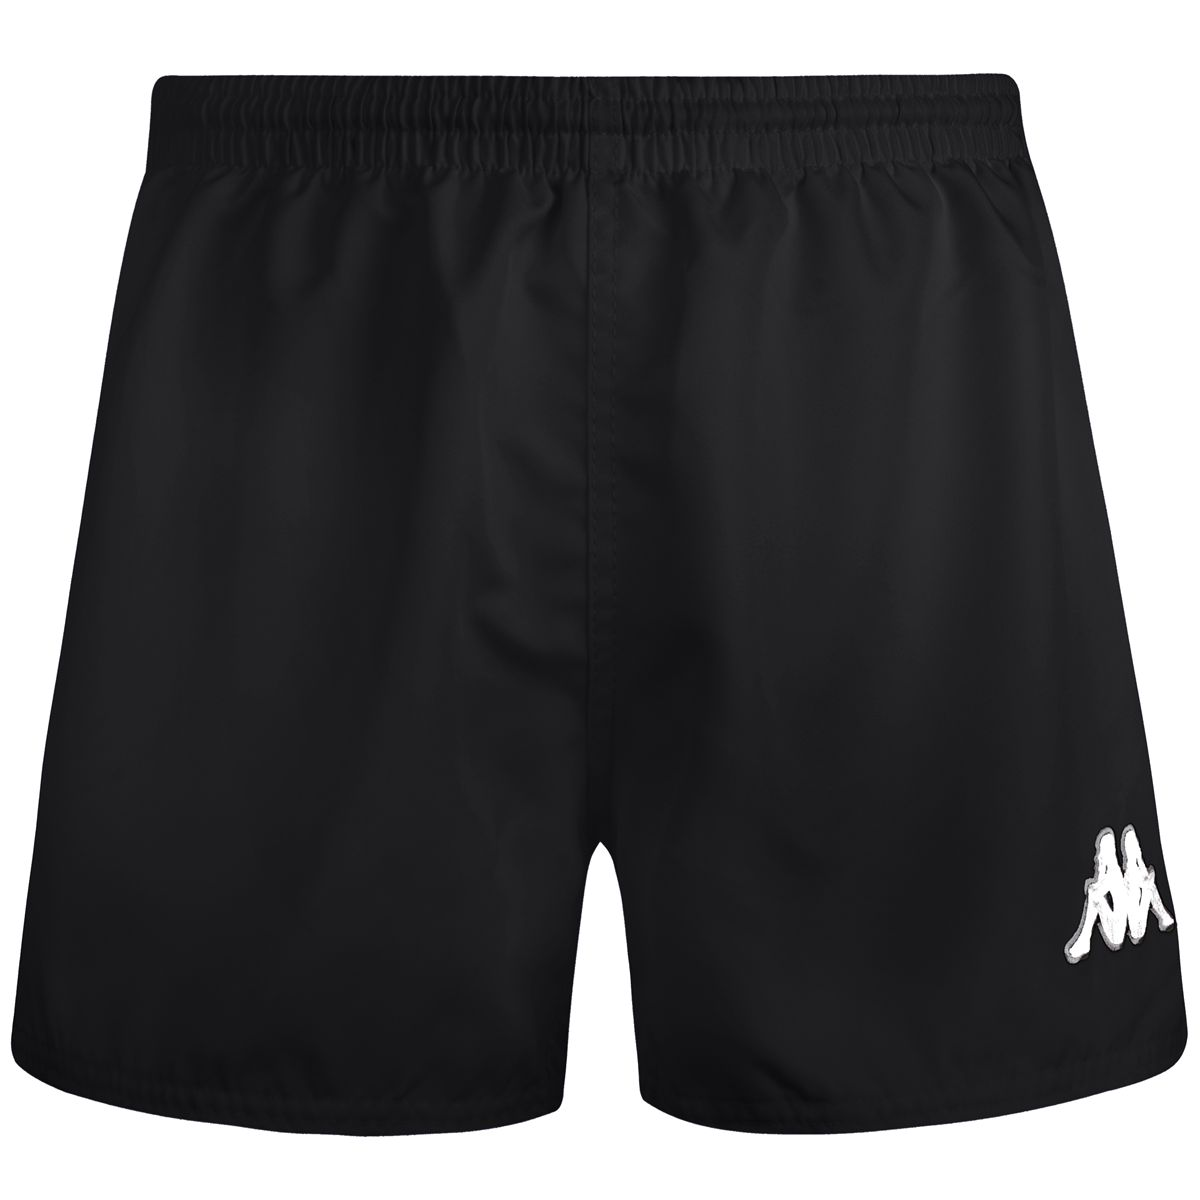 Kappa Shorts KAPPA4RUGBY ALFRED Boy Rugby SPORT SHORTS